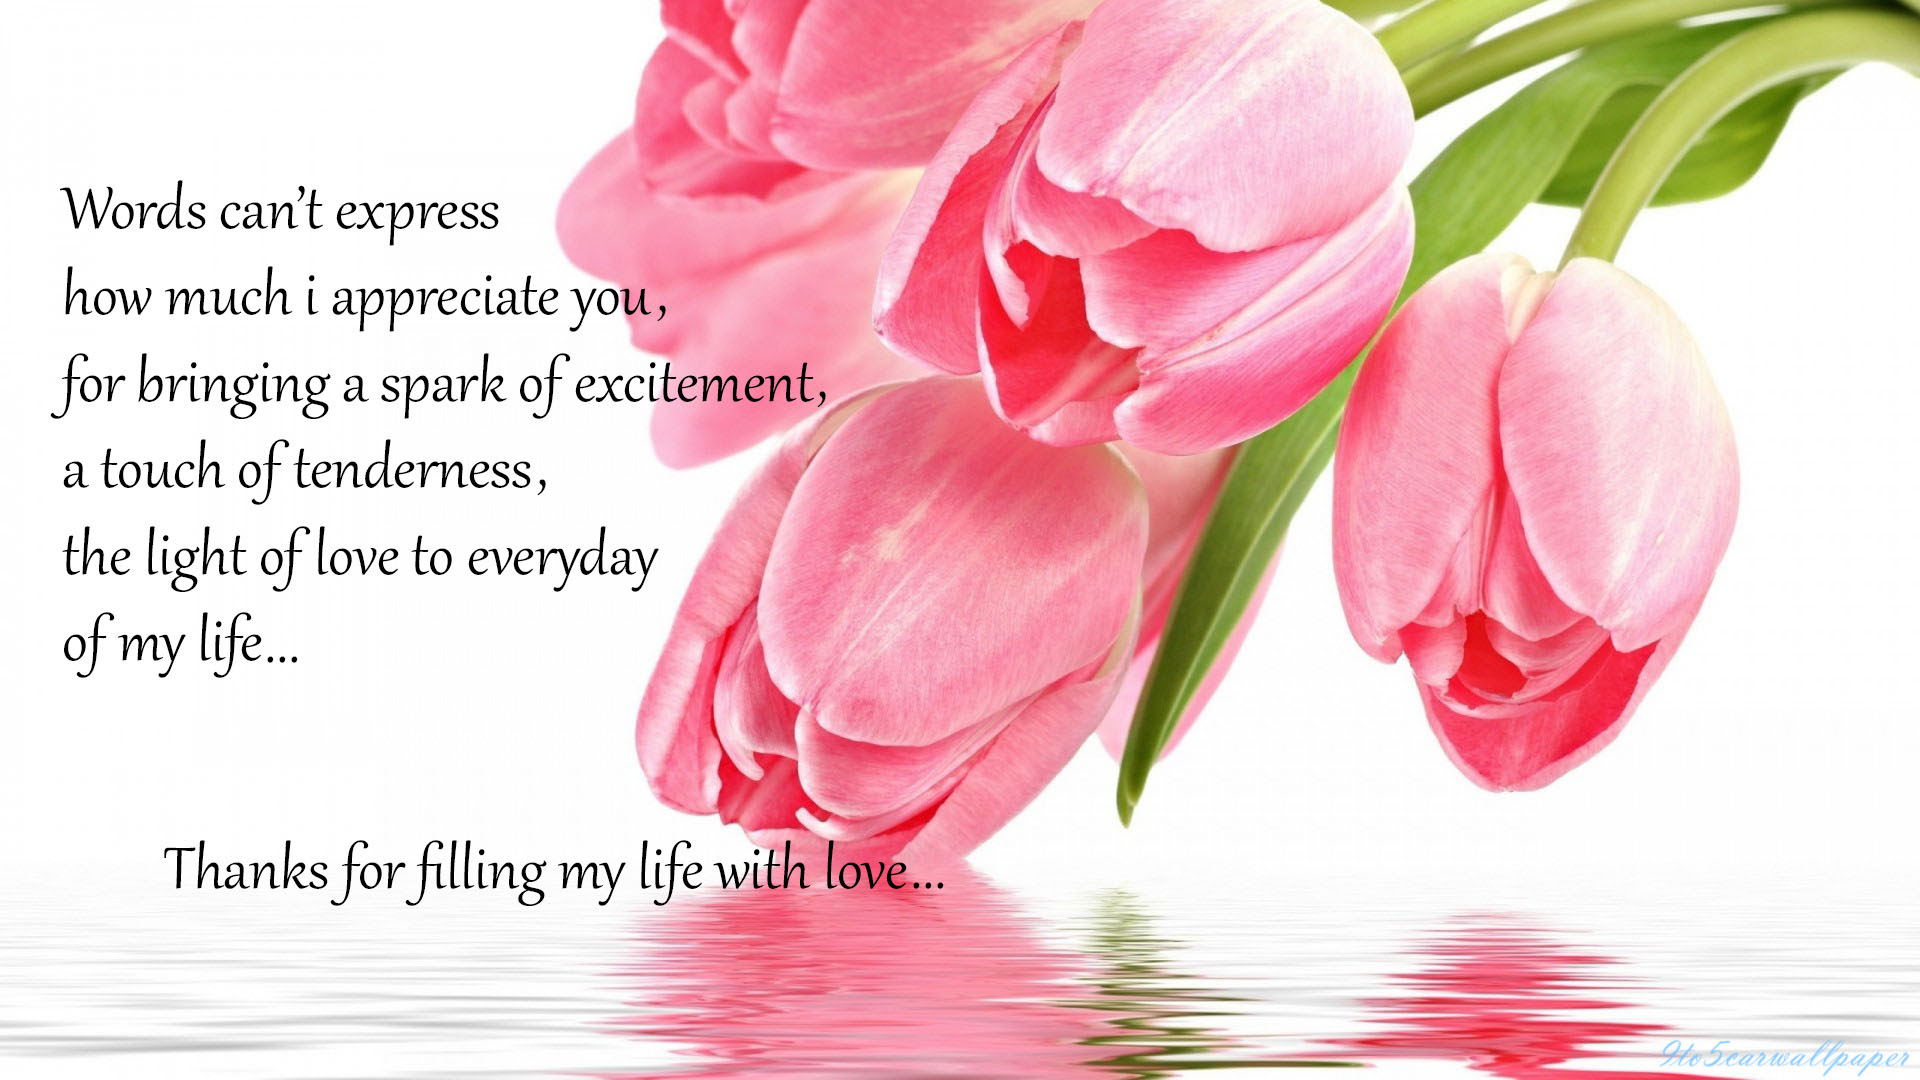 Thank You For Your Love Images Quotes Wallpapers My Site